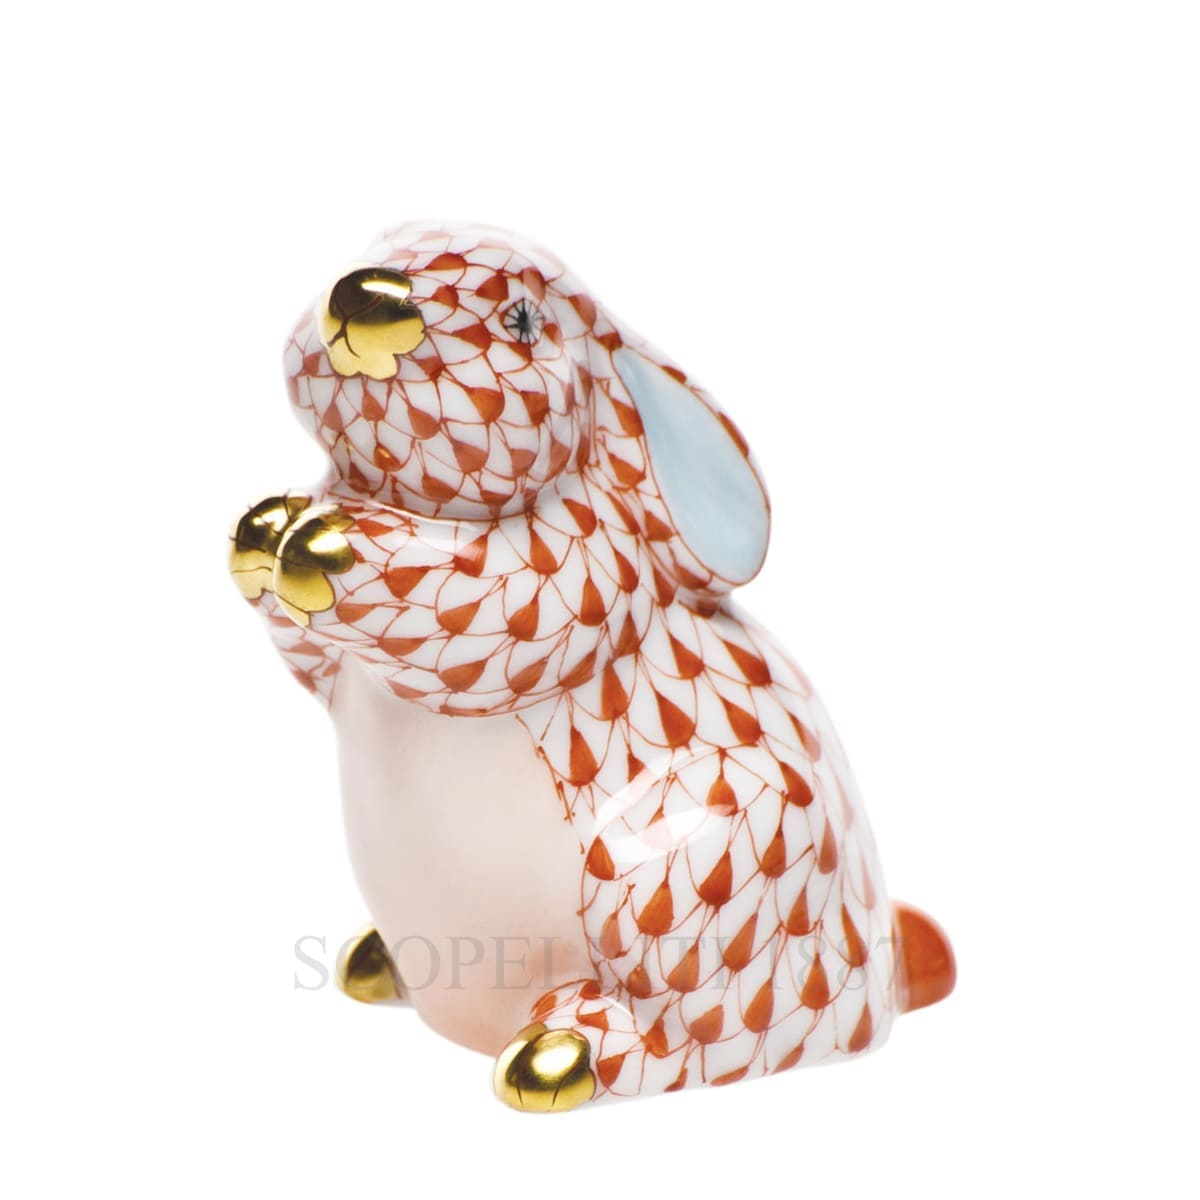 herend porcelain bunny figurine orange